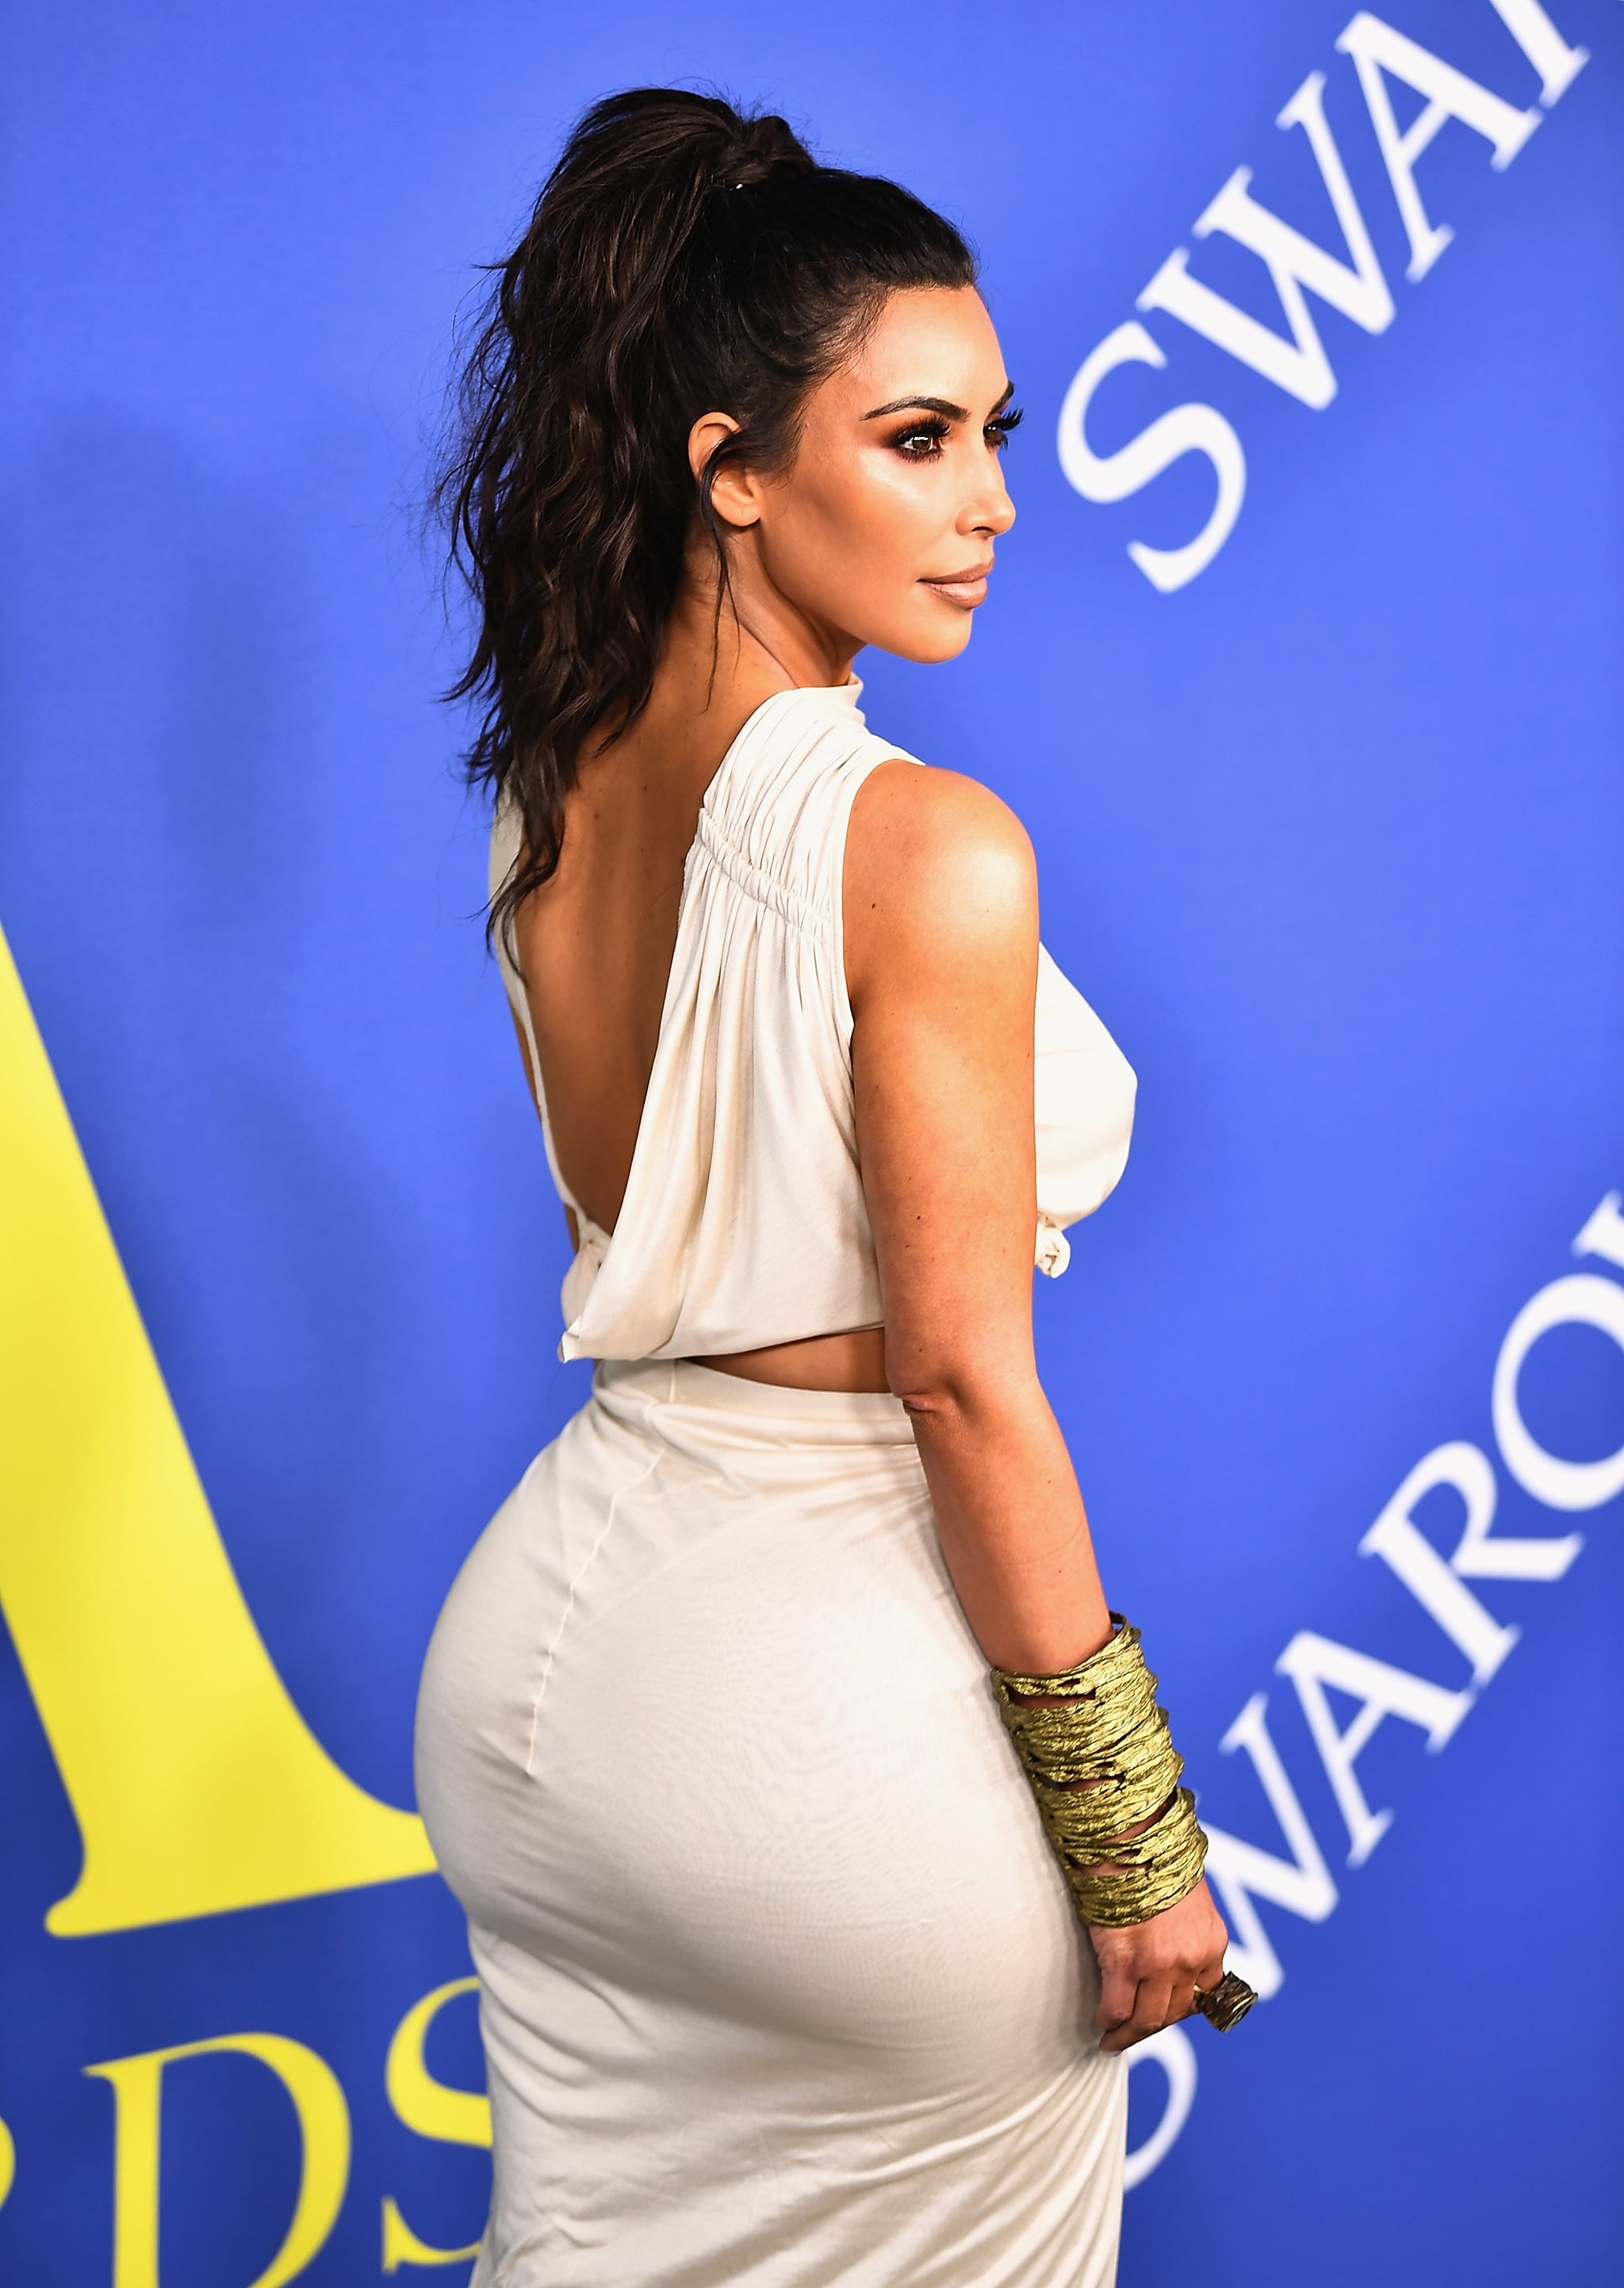 NEW YORK, NY - JUNE 04:  Kim Kardashian West attends the 2018 CFDA Fashion Awards at Brooklyn Museum on June 4, 2018 in New York City.  (Photo by Dimitrios Kambouris/Getty Images)